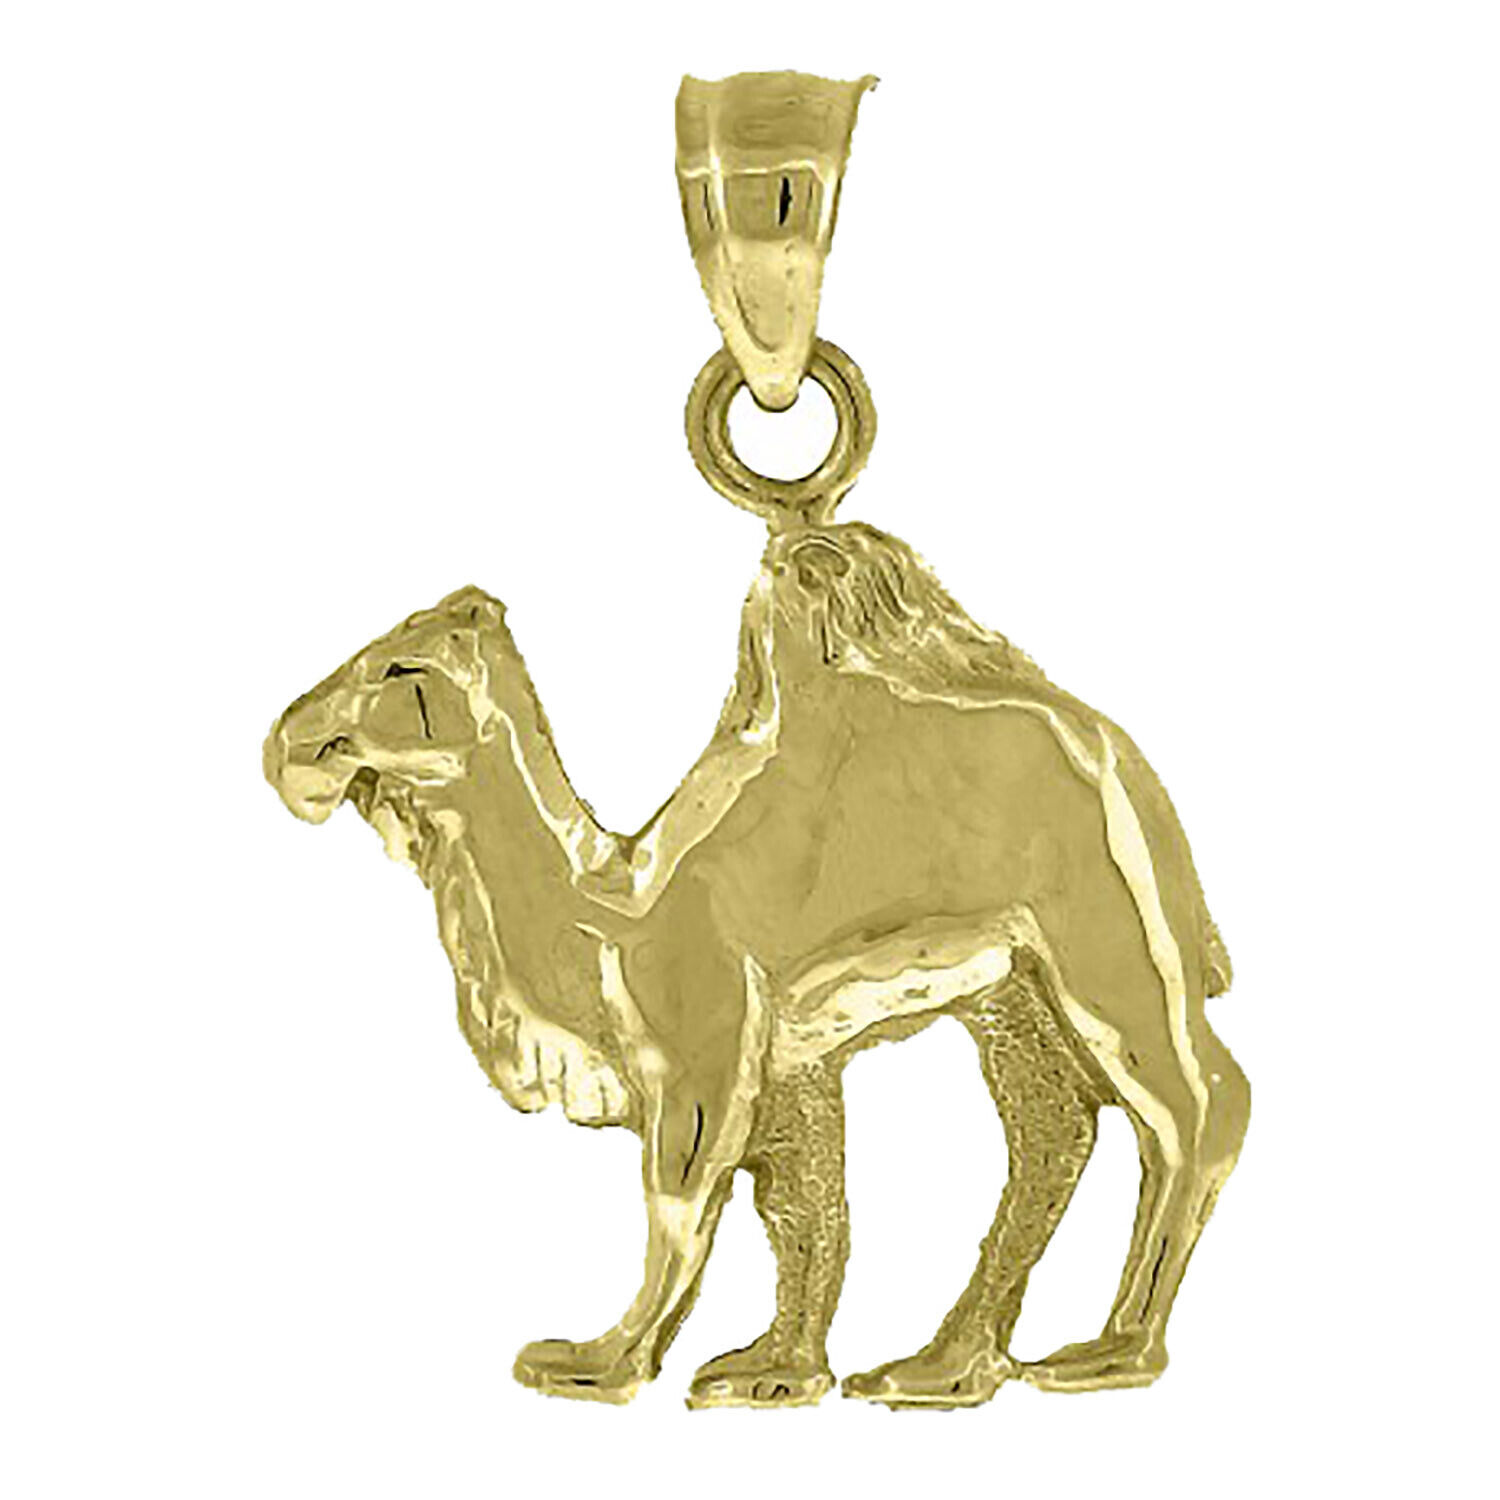 Camel Pendant 10k Solid Yellow gold Pendant - Camel 10k Yellow gold Charm